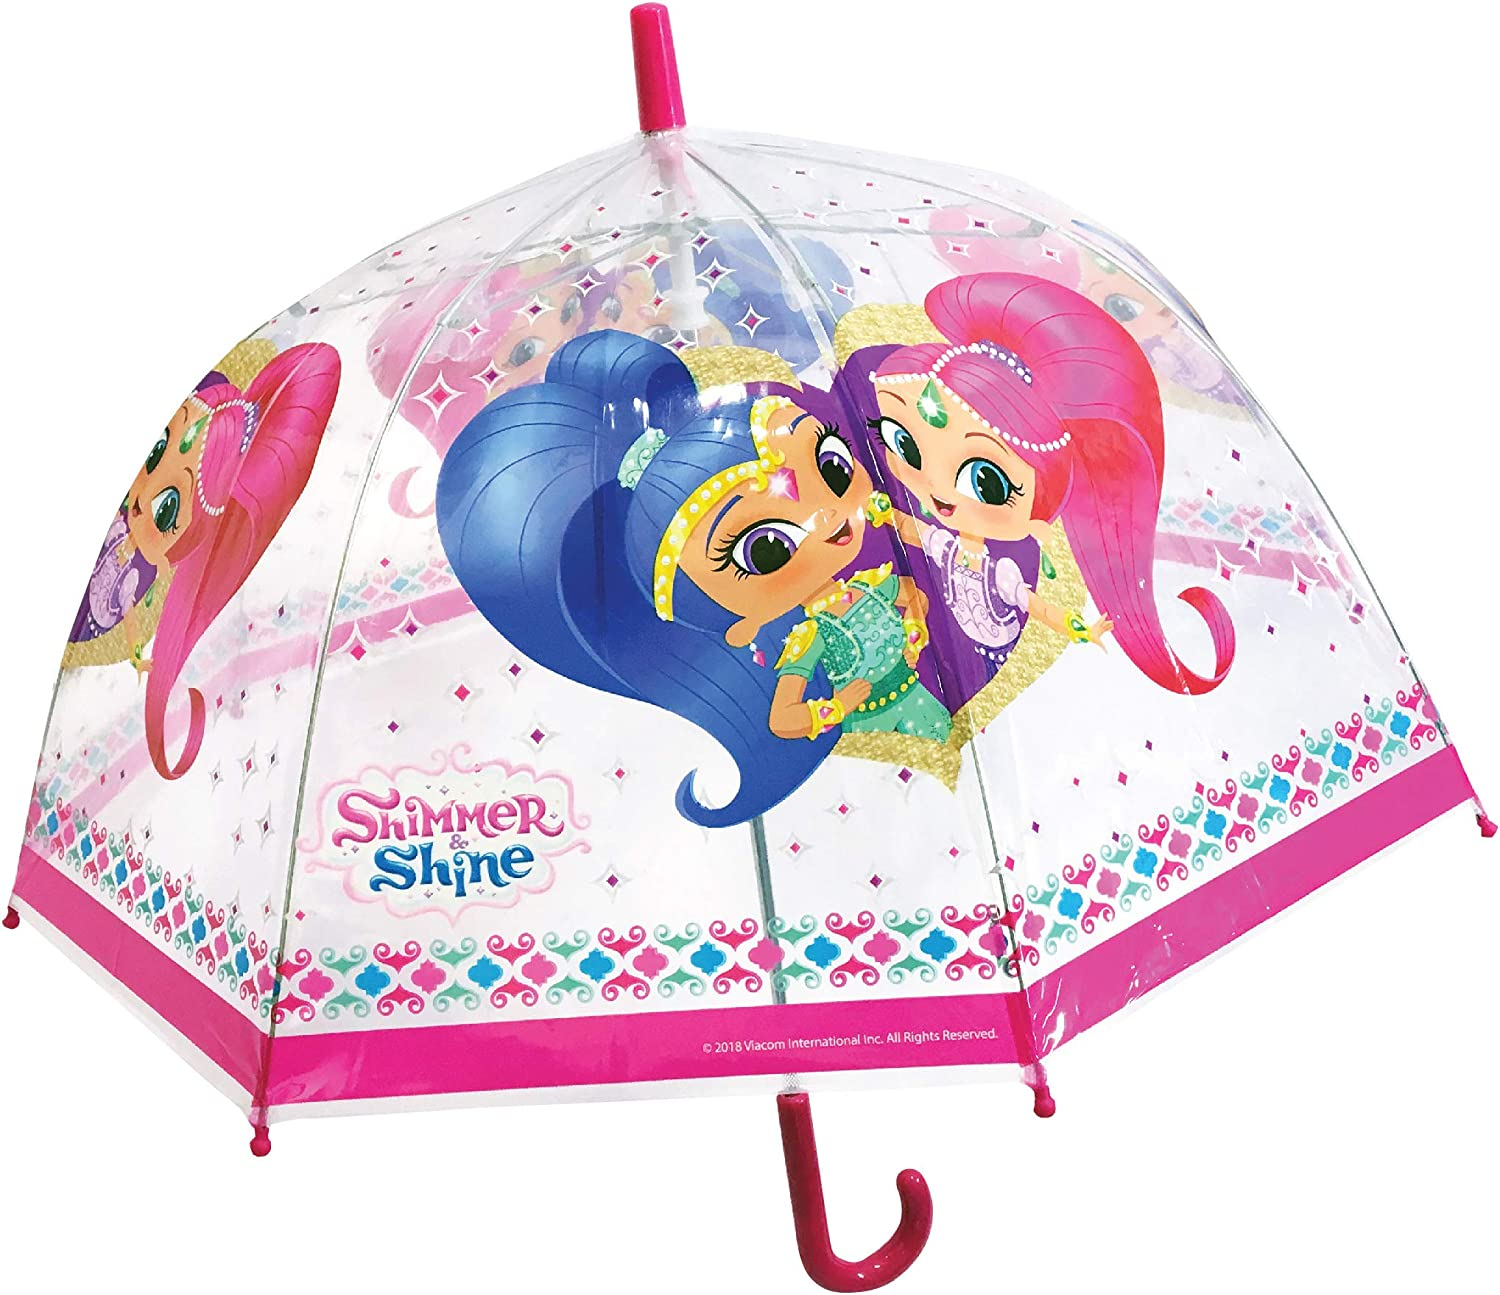 Chanos Chanos Shimmer & Shine Manual Dome Shape PoE Transparent Folding Umbrella, 48 cm, Pink Paraguas Plegable, Rosa (Pink): Amazon.es: Equipaje